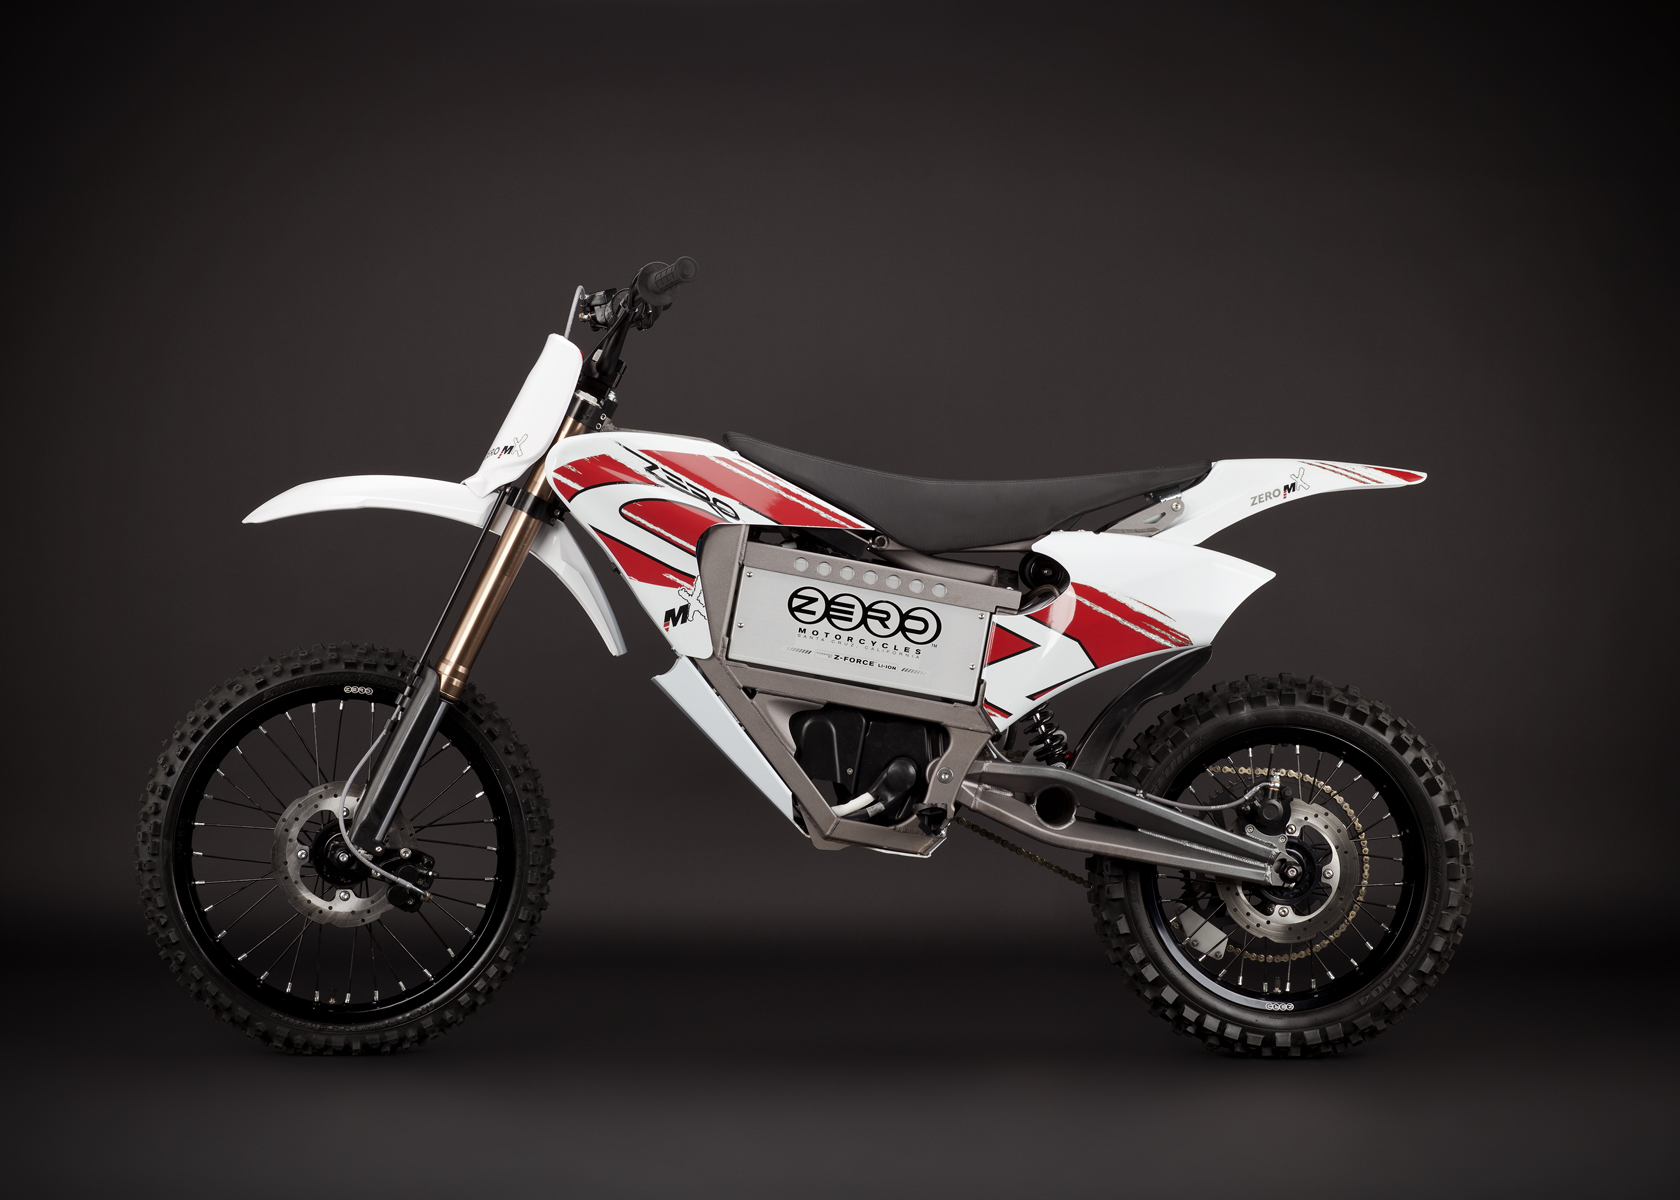 '.2011 Zero MX Electric Motorcycle: Left Profile, Dirt Model.'